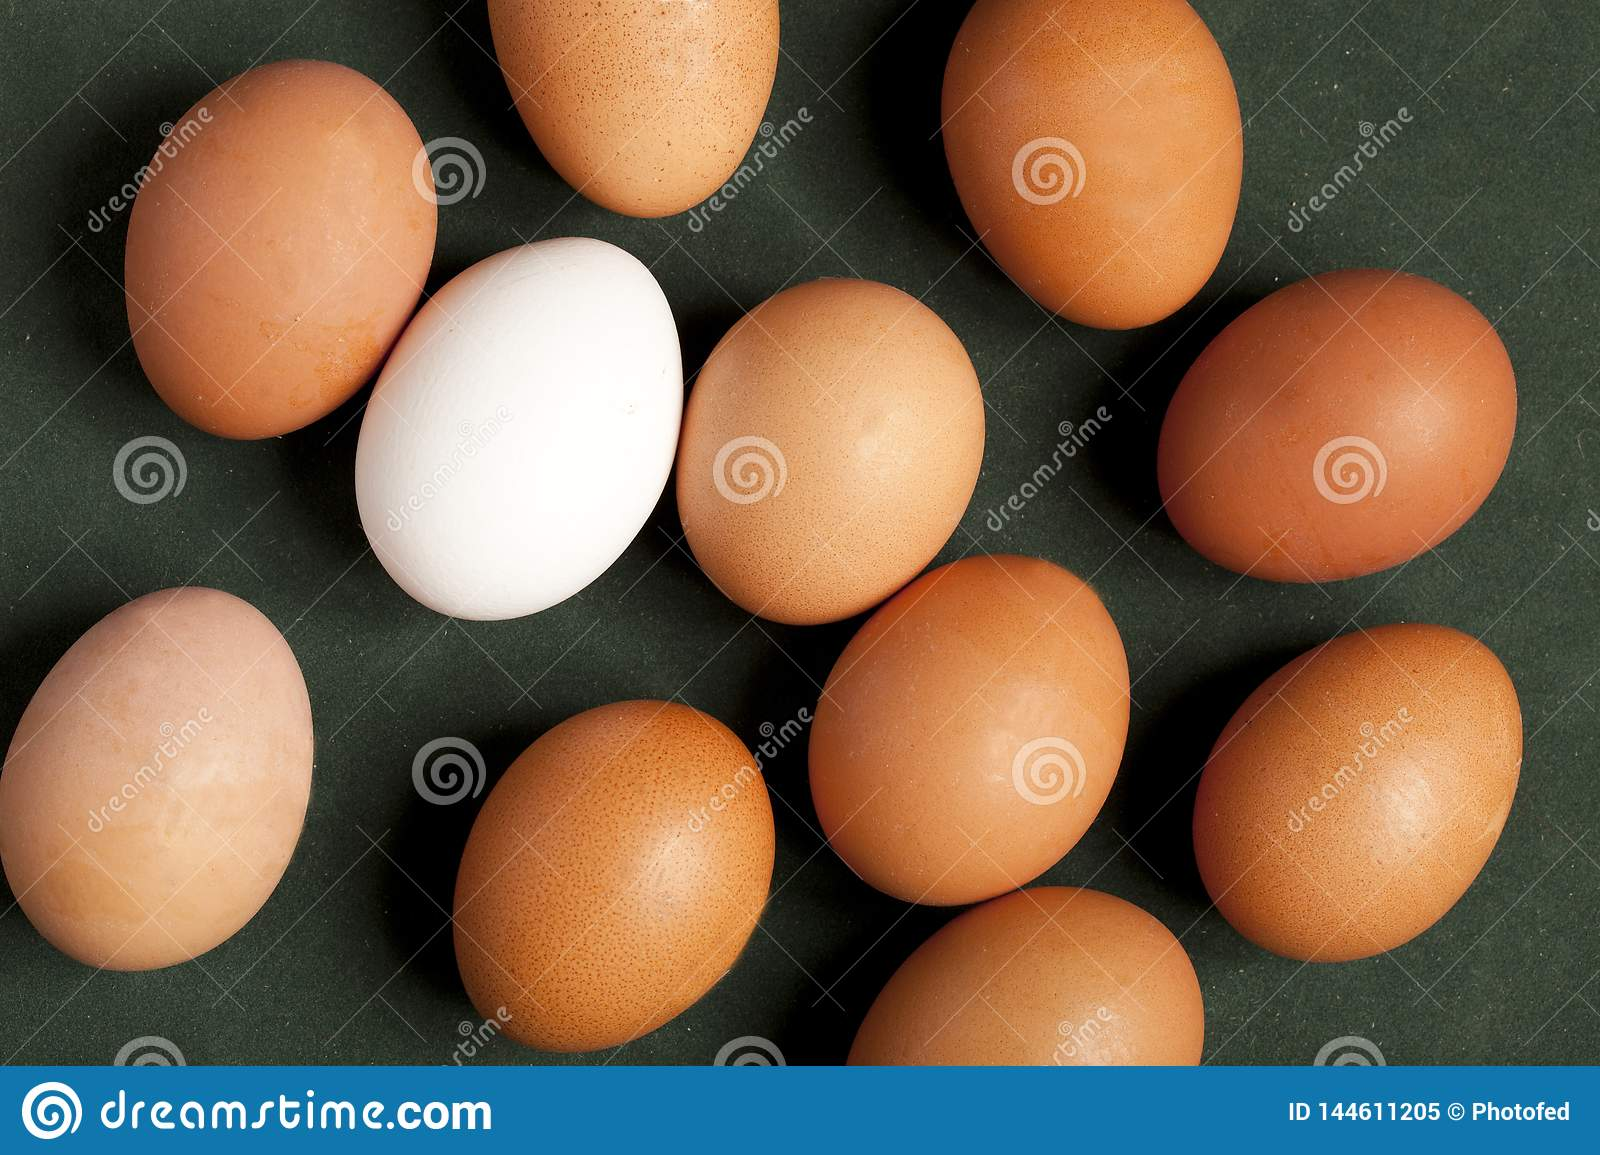 Close-up view of raw chicken eggs in box, egg white, egg brown on green background.